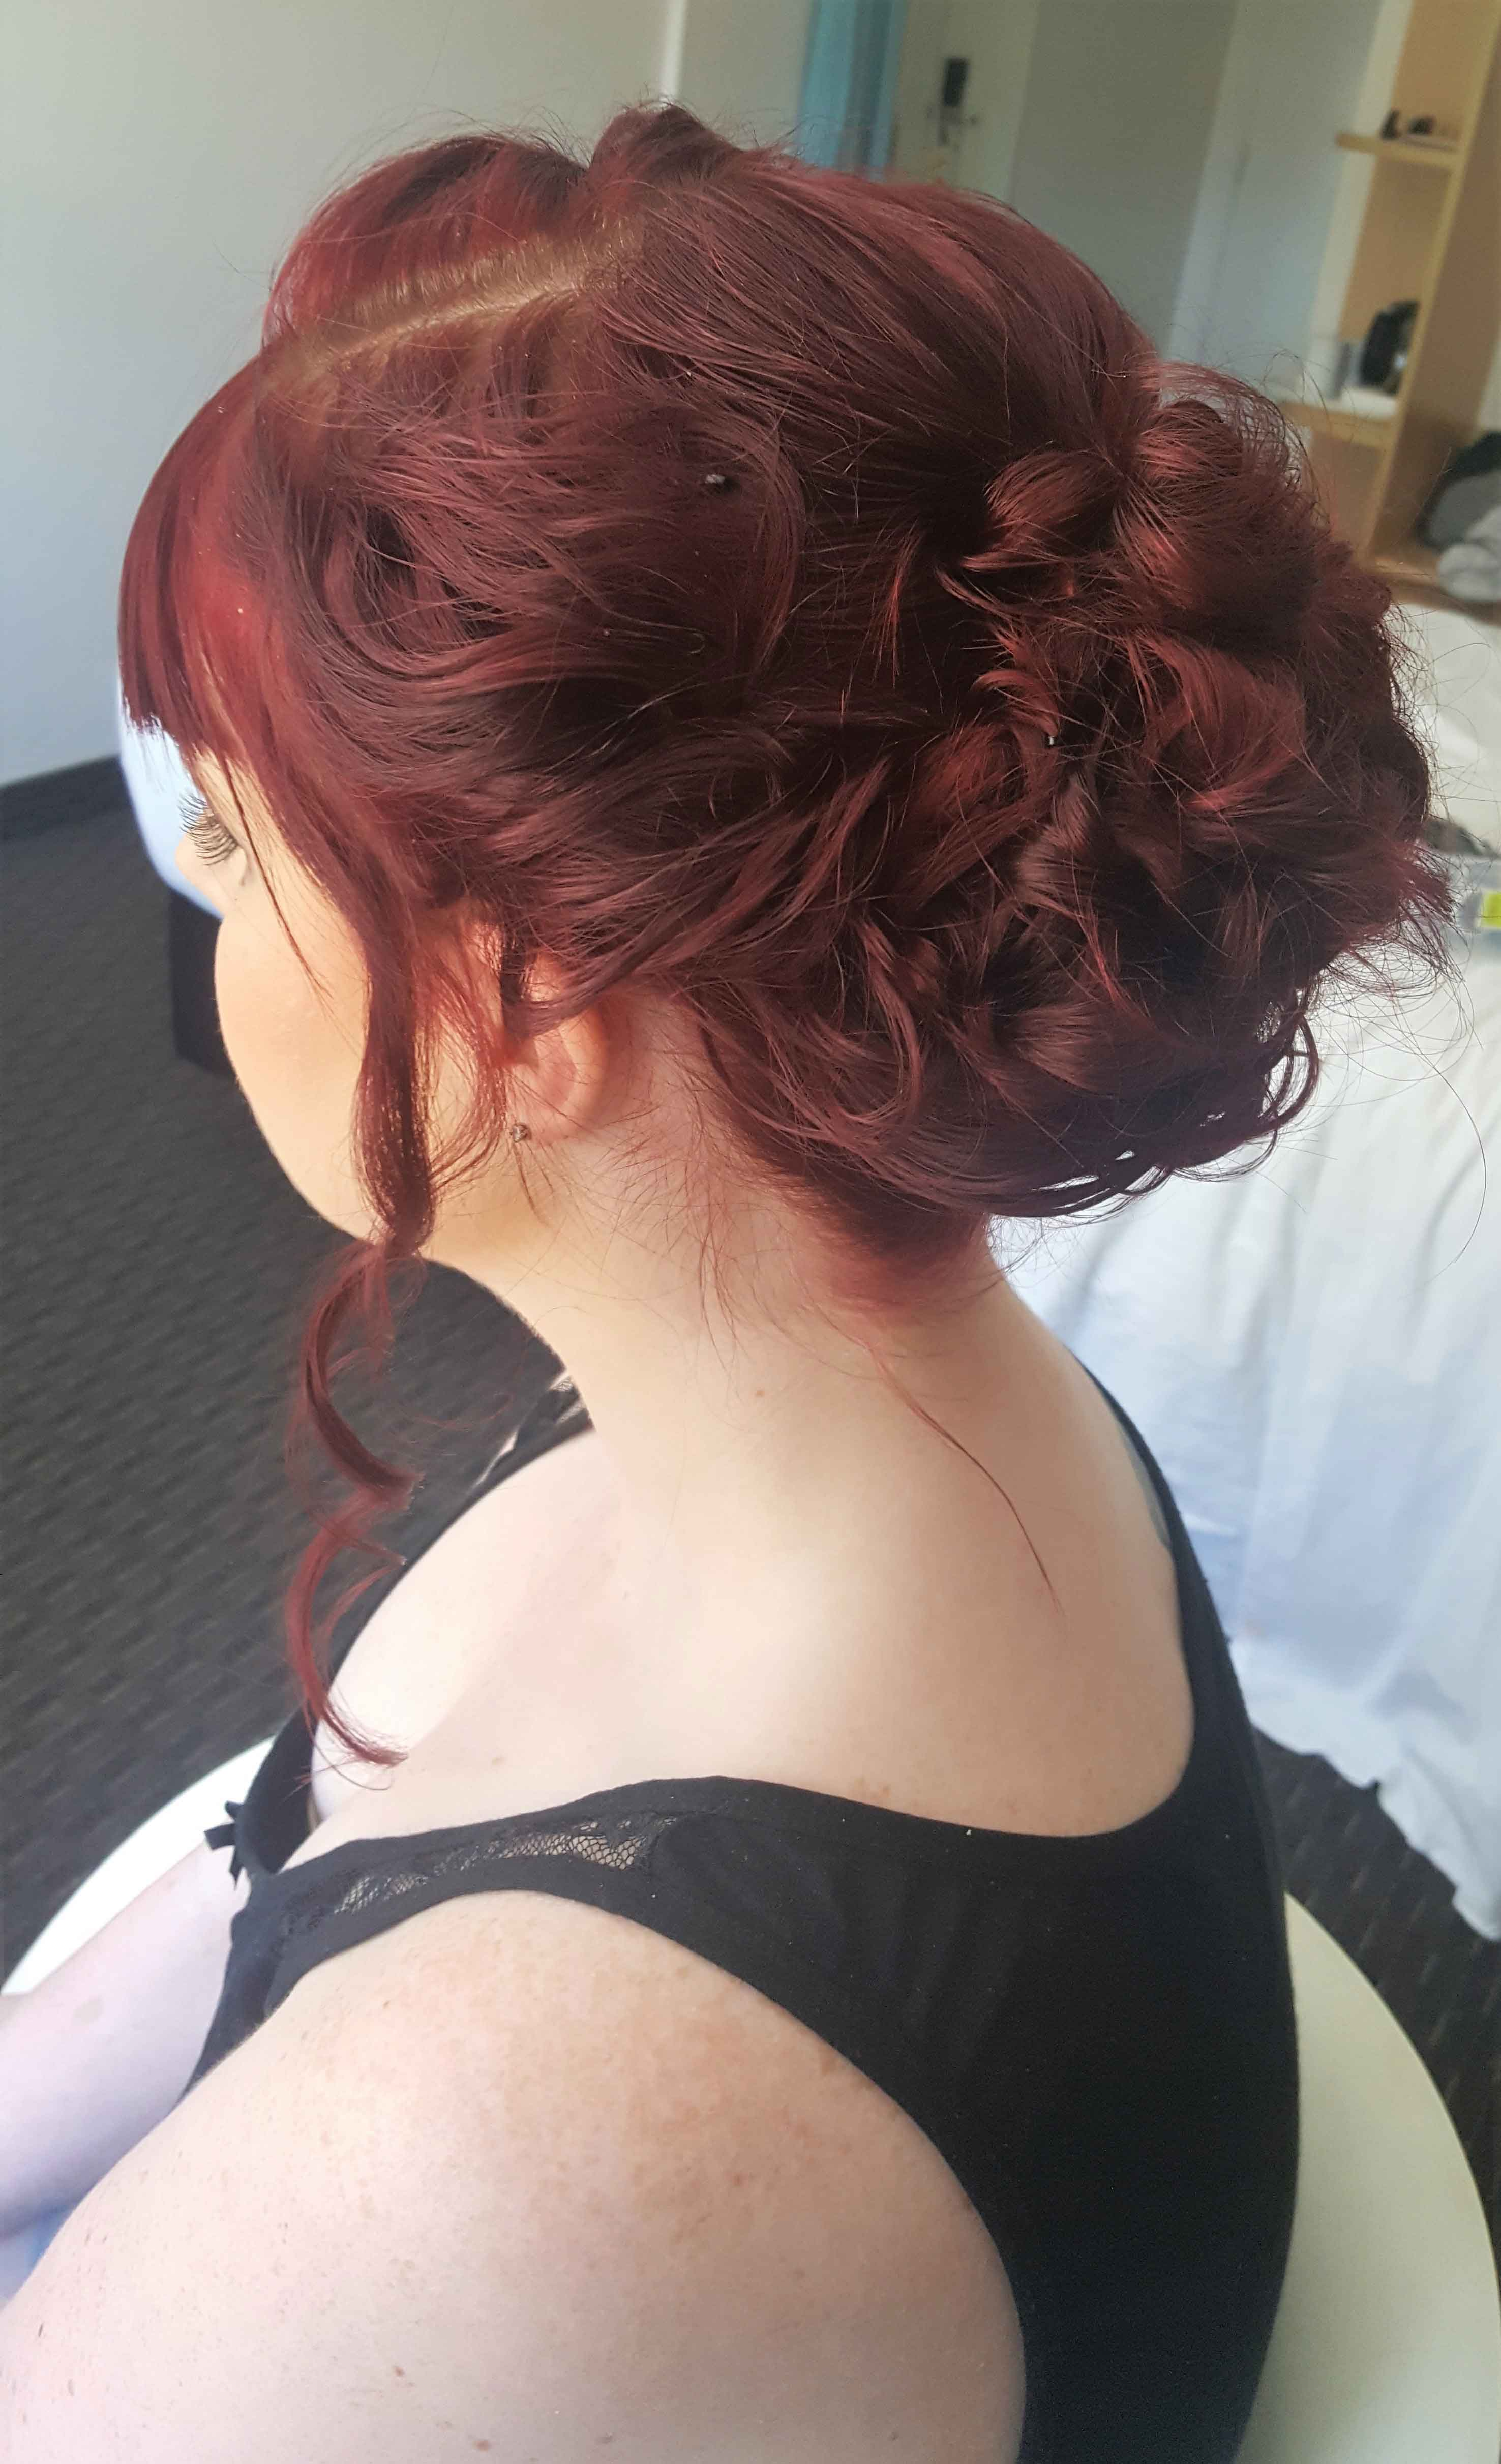 guest-for-a-wedding-makeup-and-hair-1